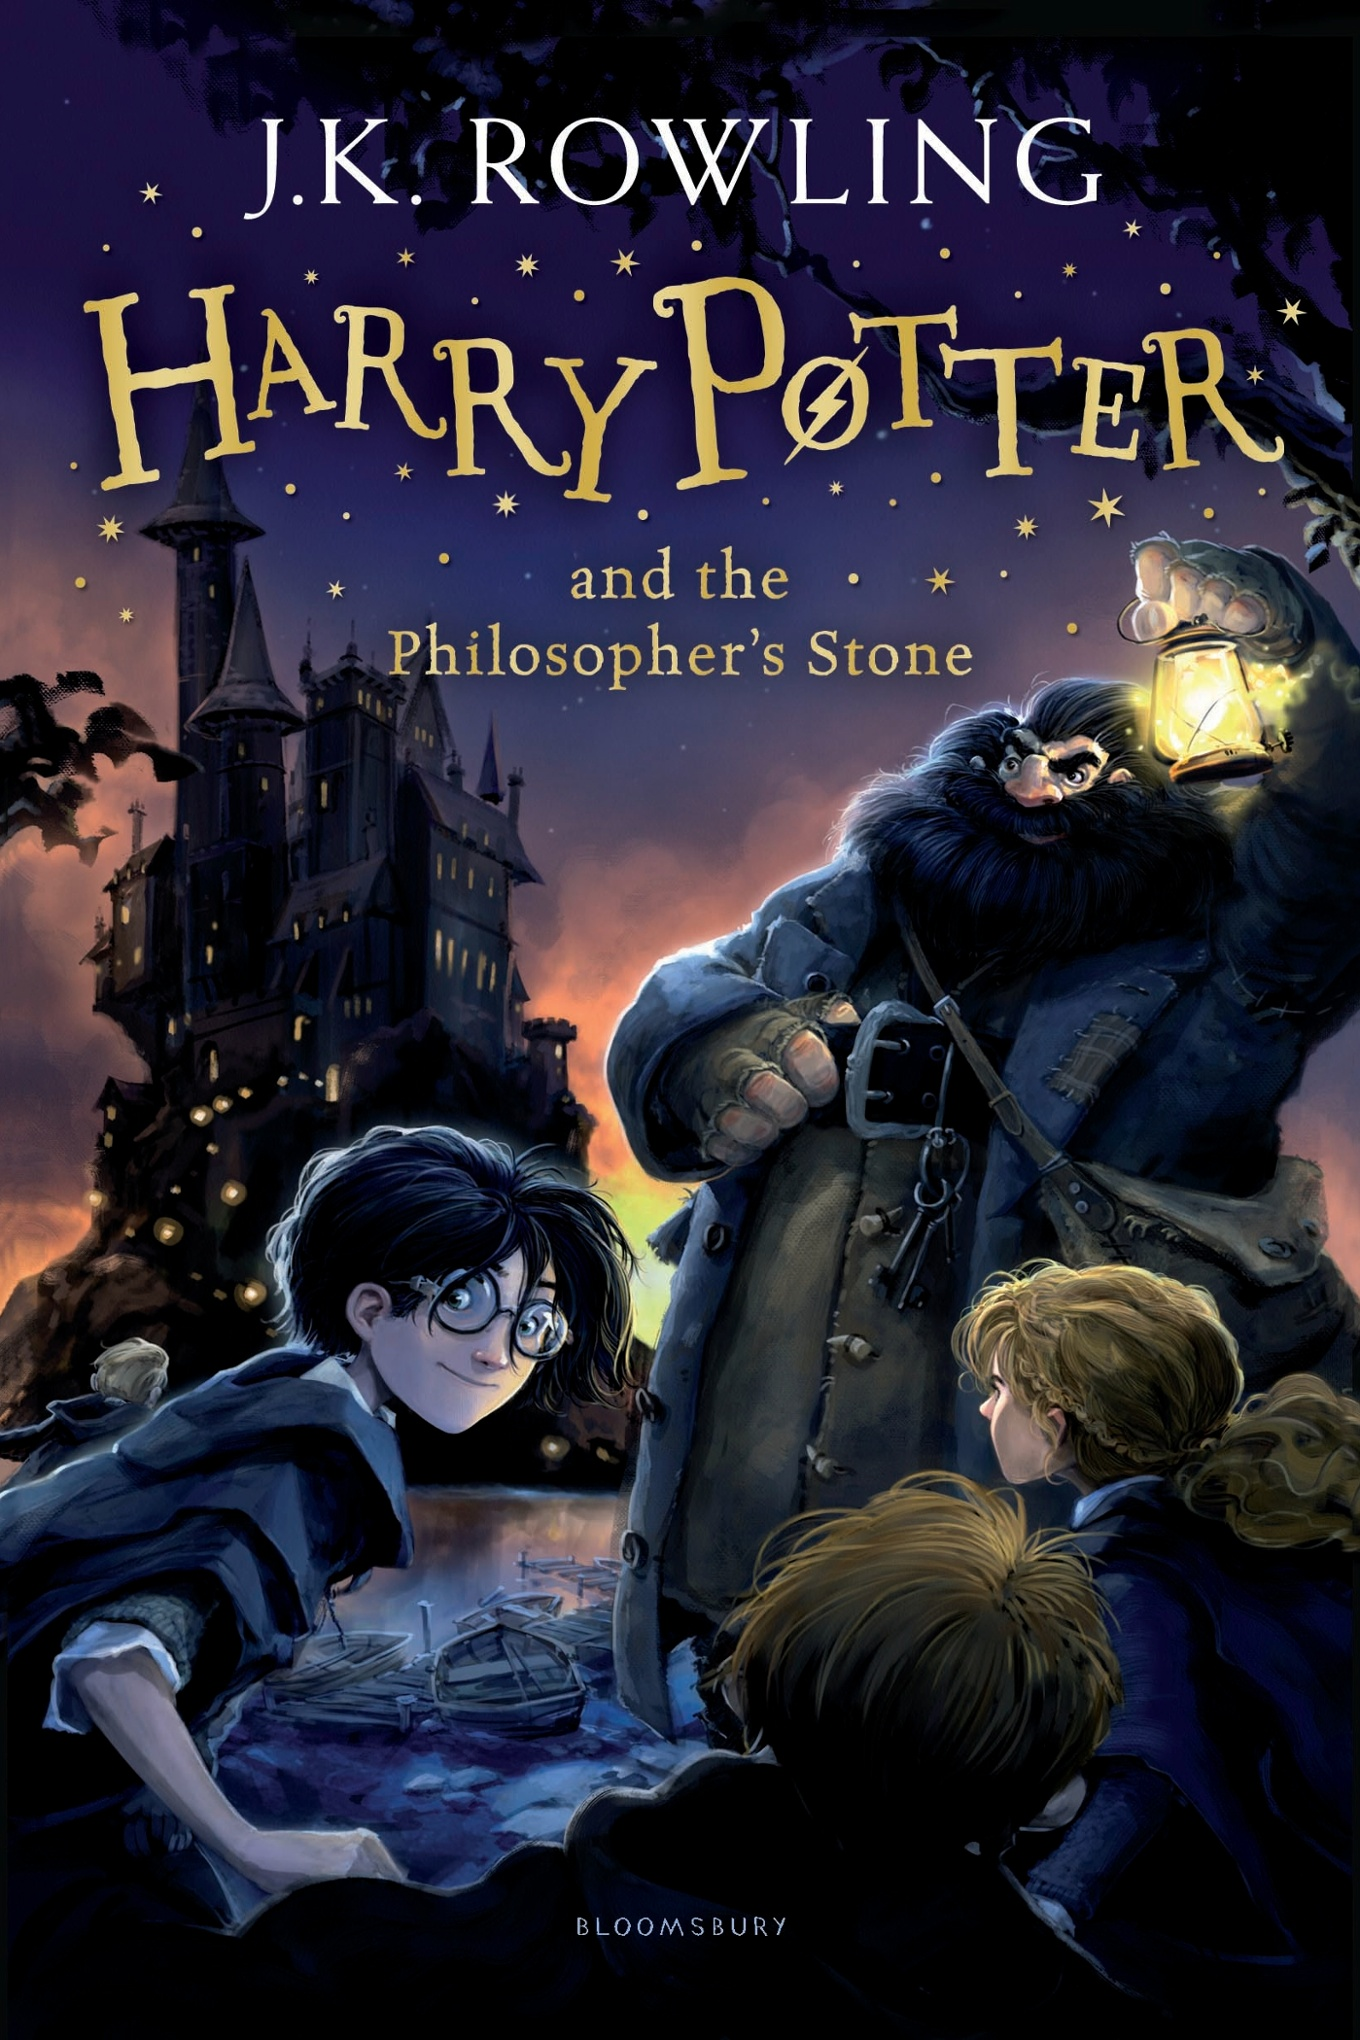 potter harry books covers guardian revealed harrypotter author think children serie childrens